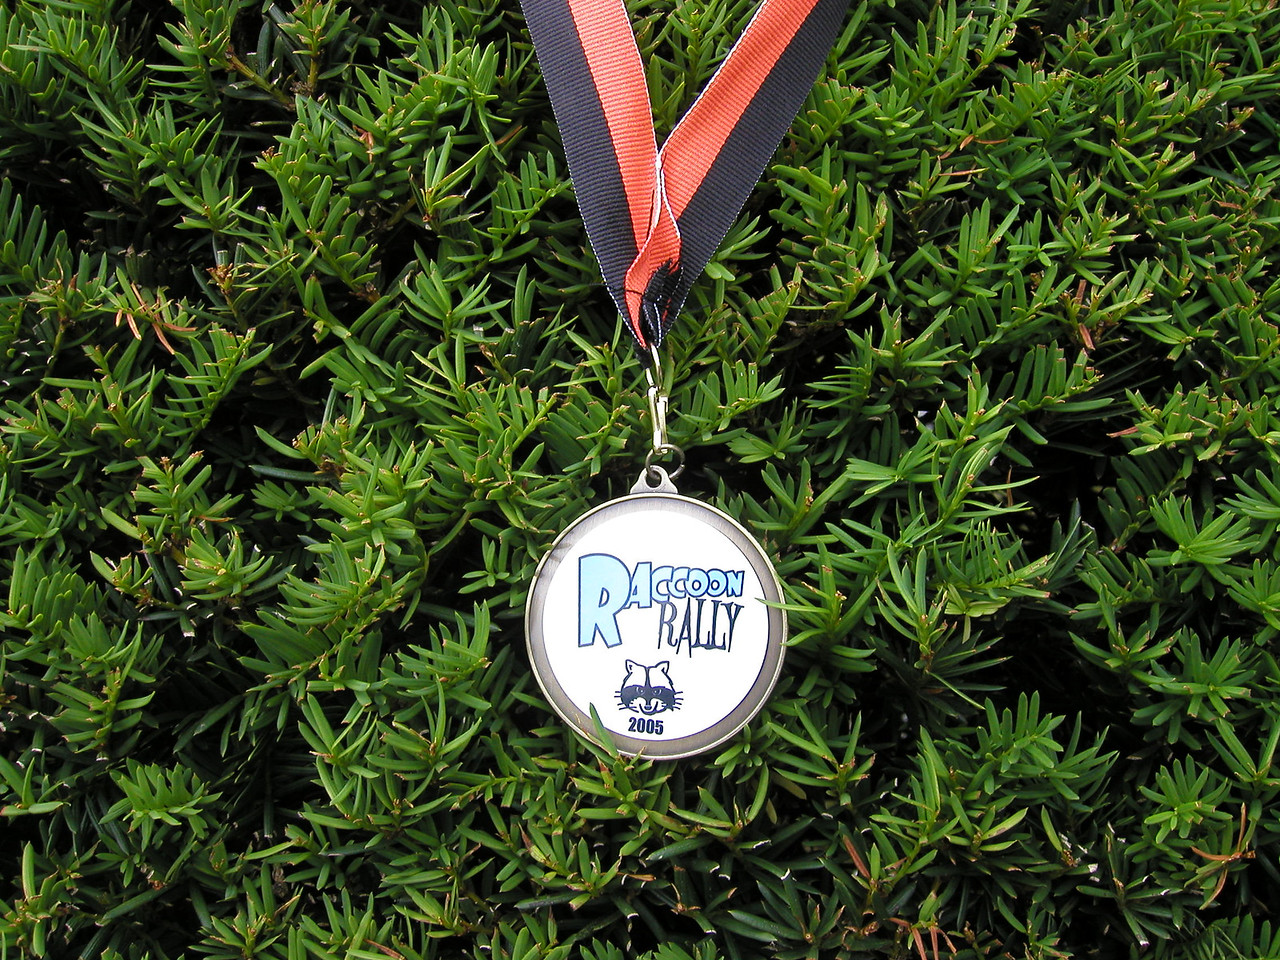 Here's the other side.......OH yea, I kinda forgot to mention......while I got 1st place in my age group.....I....a.....a.....was ..the only one in my age group....hows that for competition!! ......<br />     But as I said earlier, we ranked 41 & 42nd out of 138, so there were a whole lot of younger racers wanting to poke sticks in our spokes as we passed them.... Ha, Ha, Ha!!